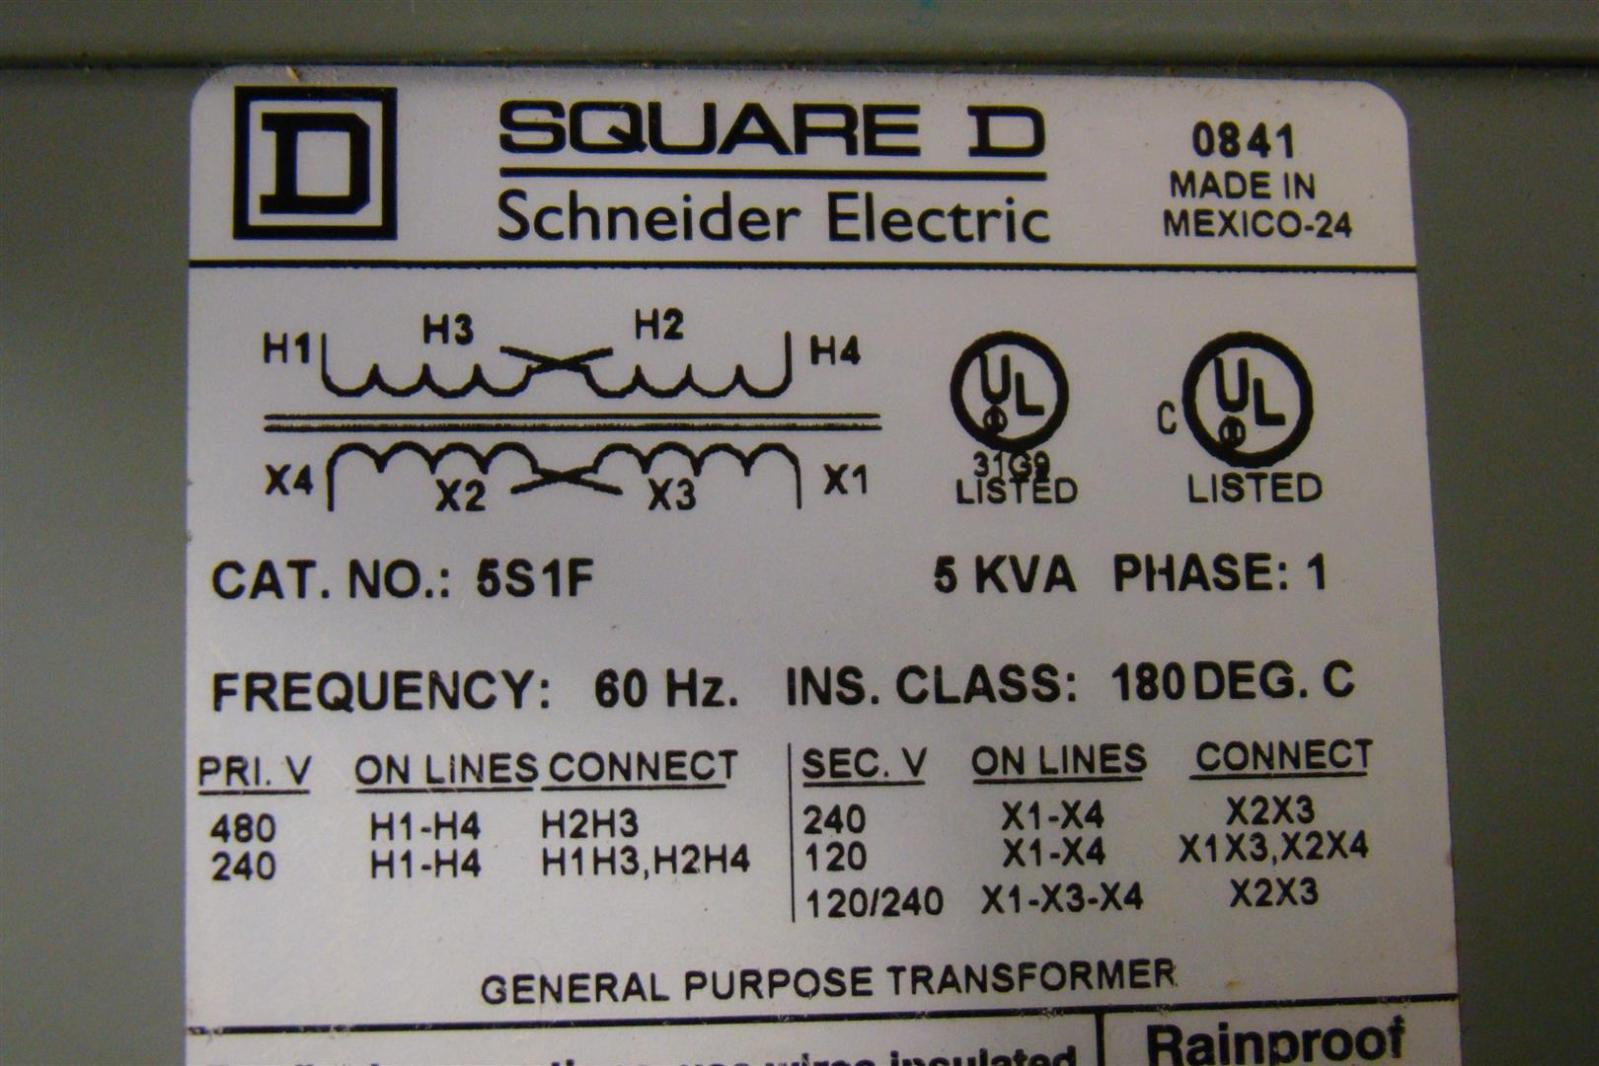 afn172 square d 5 kva transformer ph1 480 240 x 240 120 5s1f 6 square d 5 kva transformer ph1 480 240 x 240 120 5s1f ebay 5kva transformer wiring diagram at mifinder.co